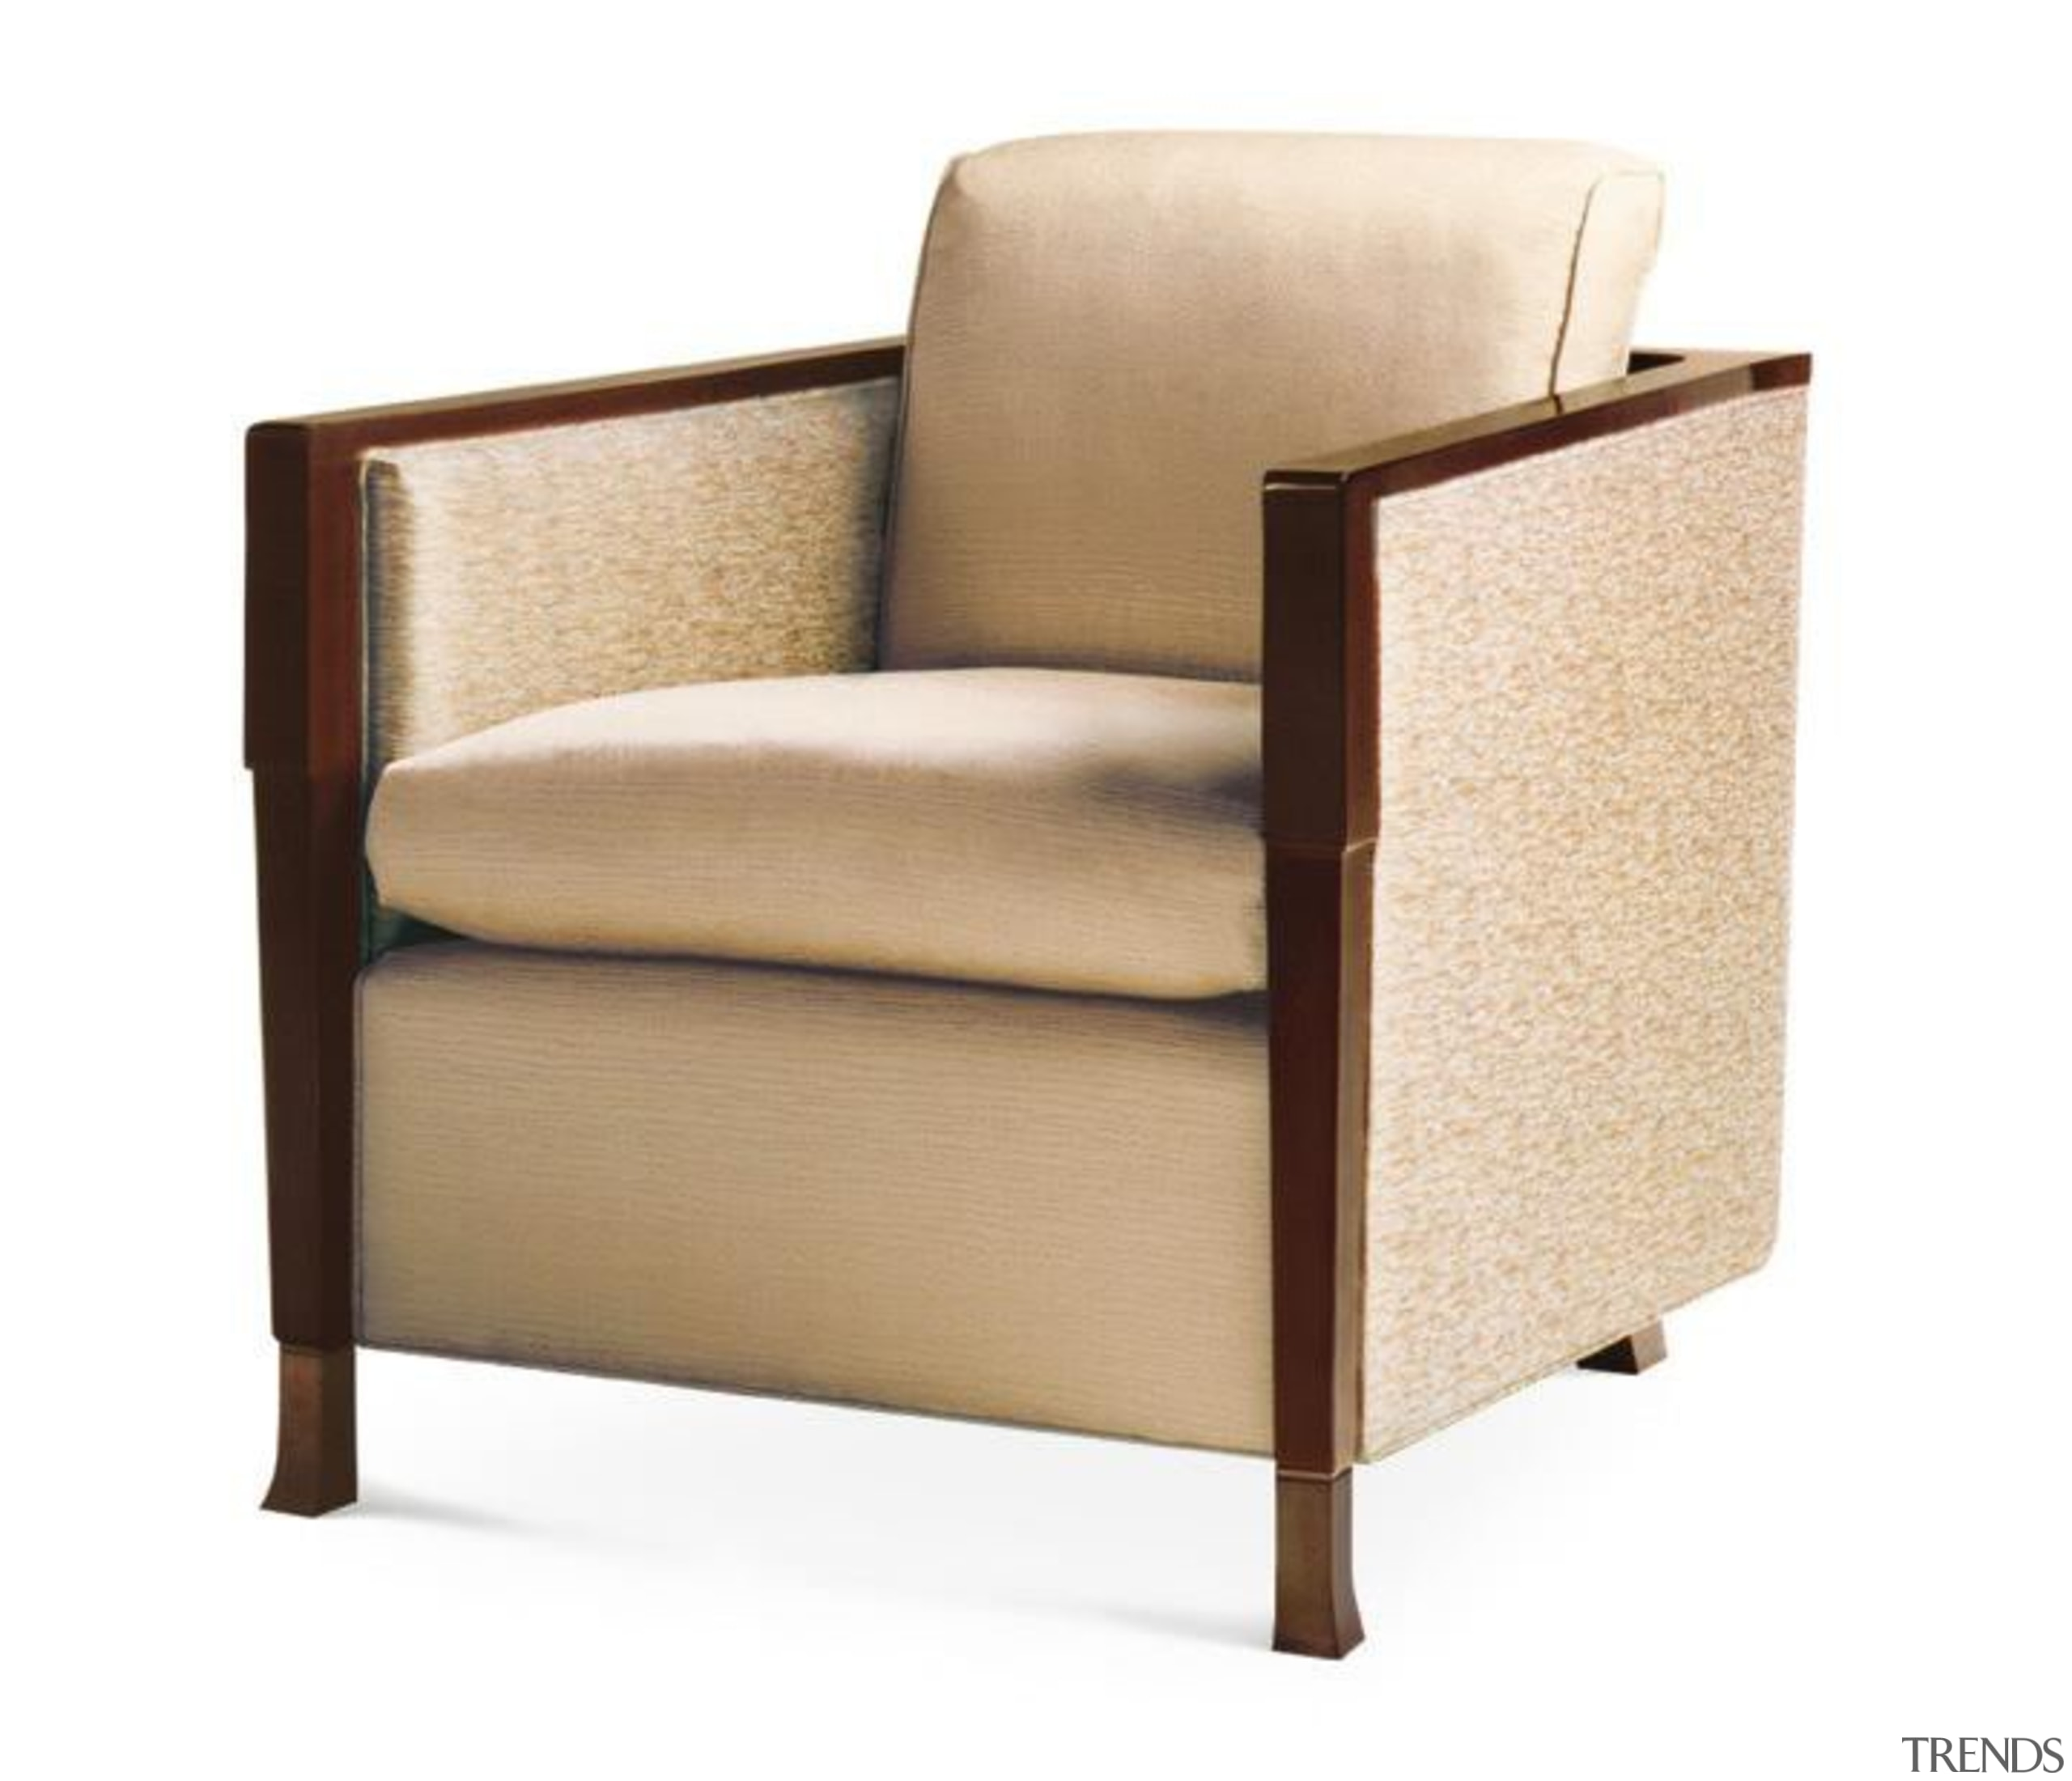 The work of William Sofield is defined not angle, armrest, chair, club chair, furniture, product, product design, white